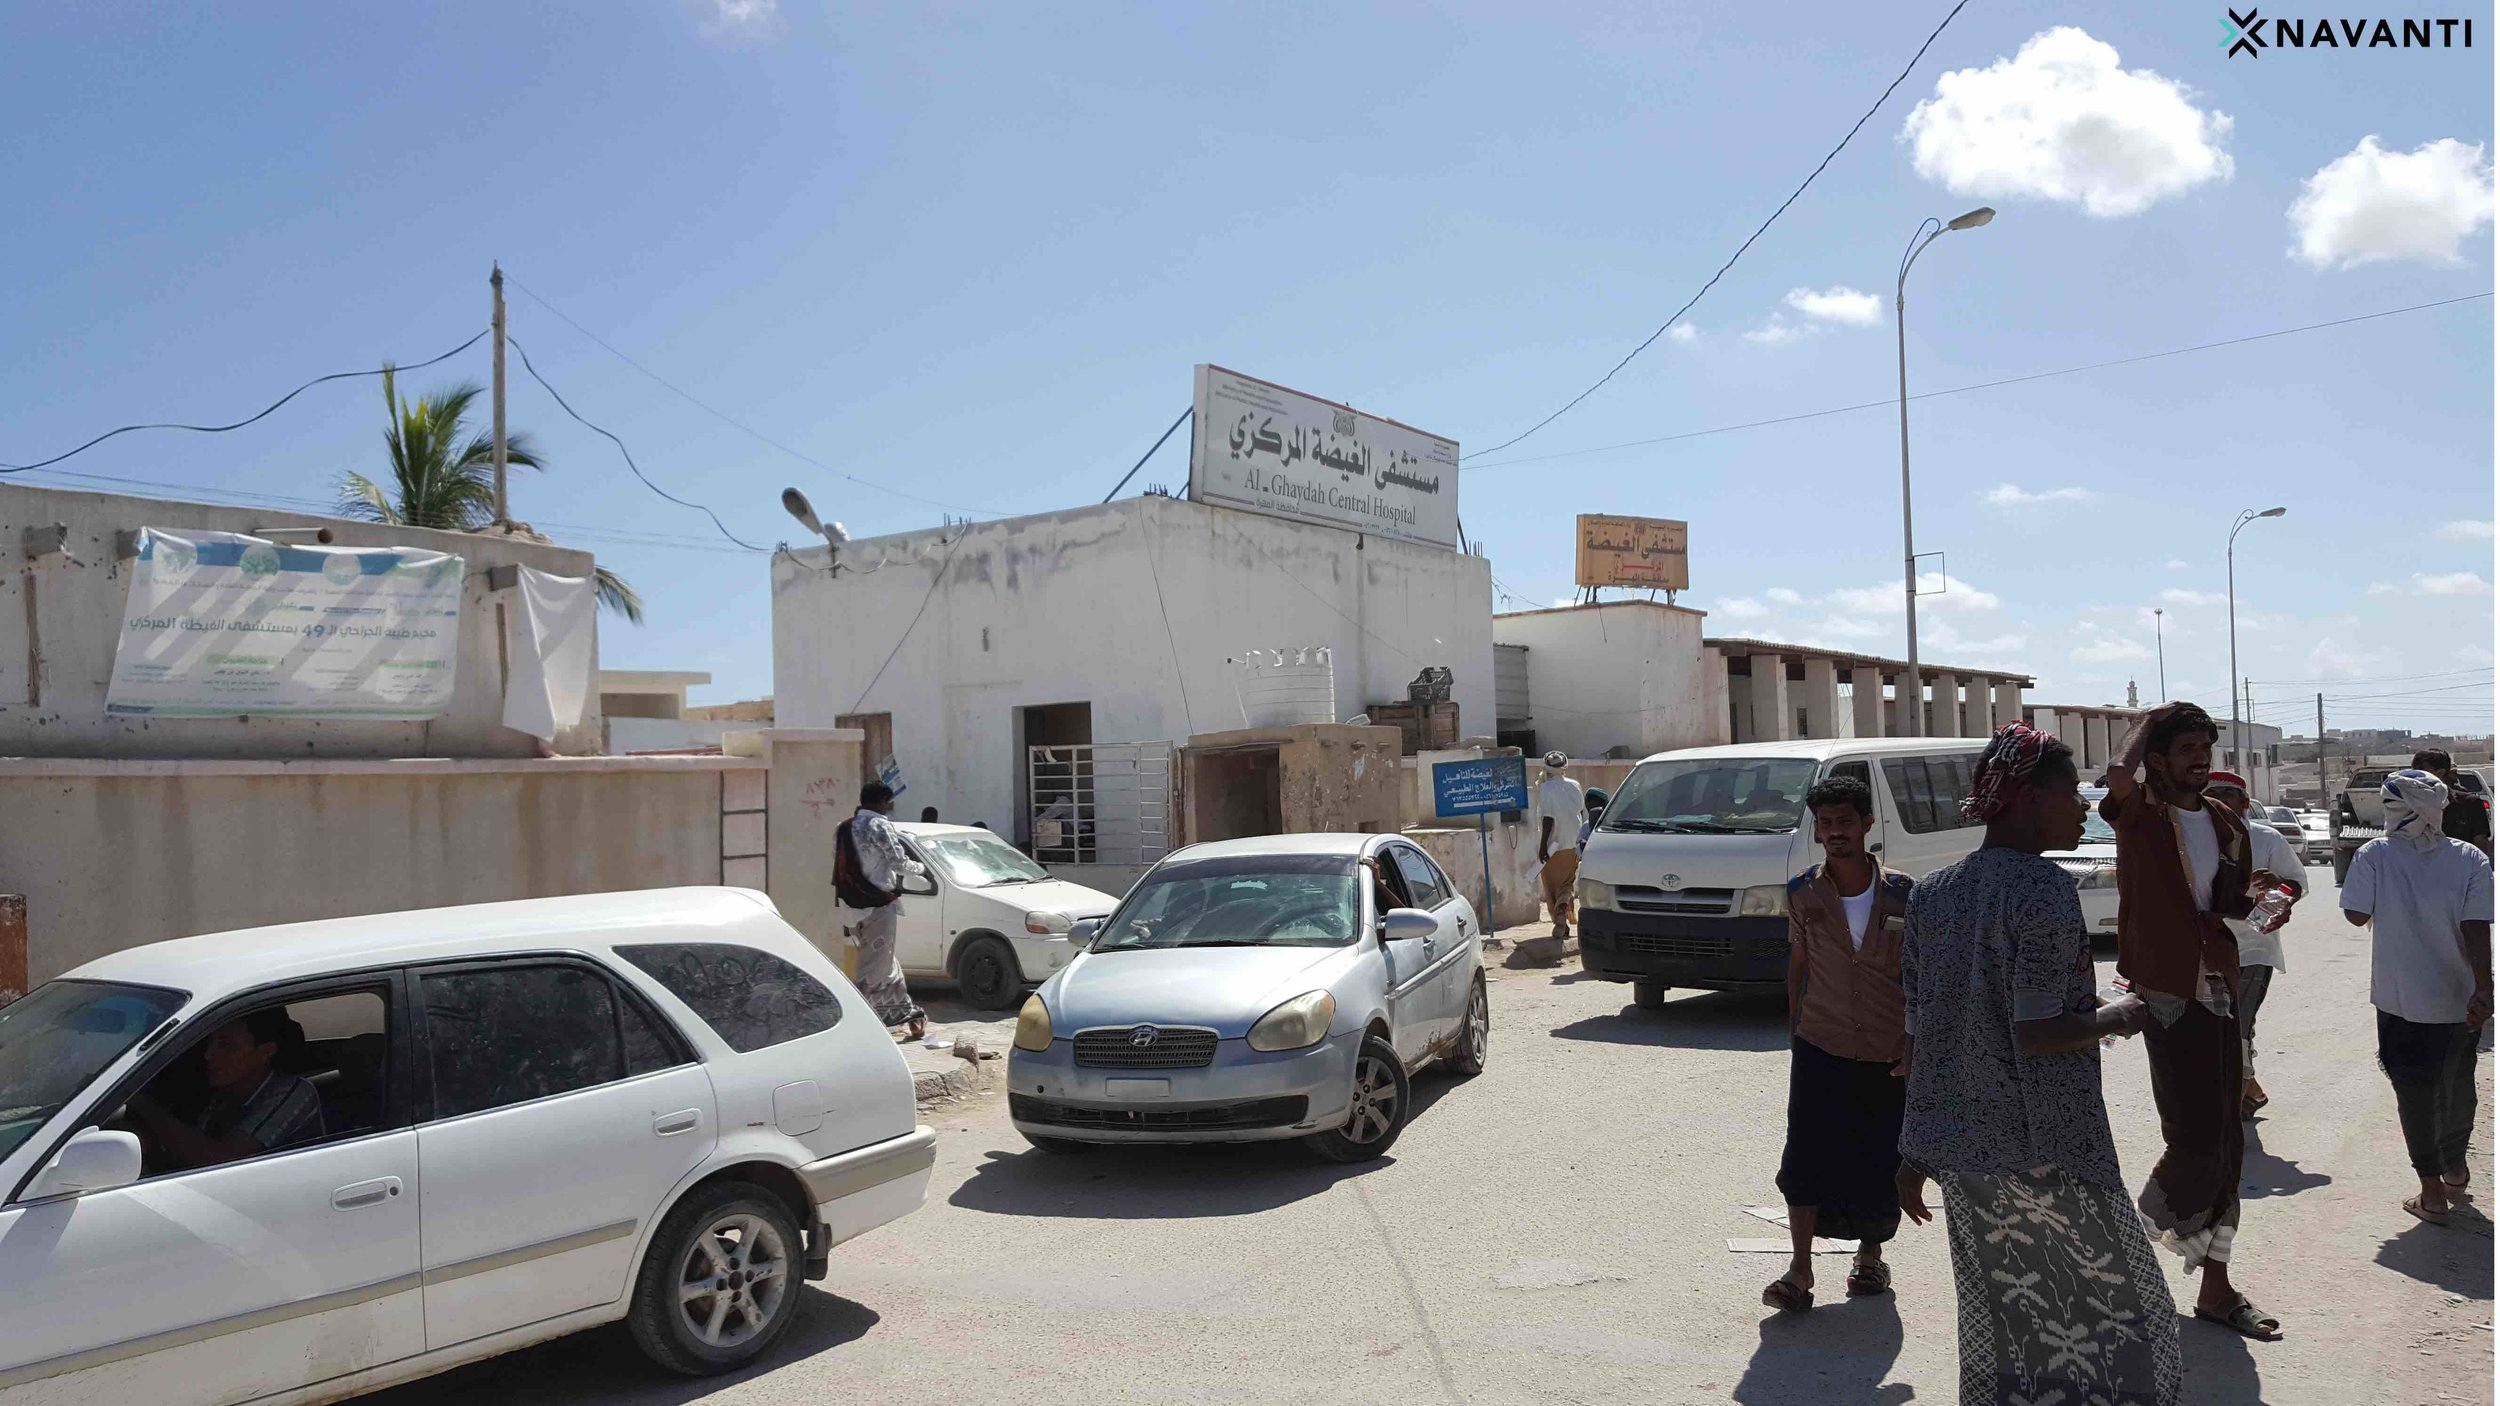 Street scene in al-Ghayda, capital of al-Mahra governorate. Source: Navanti